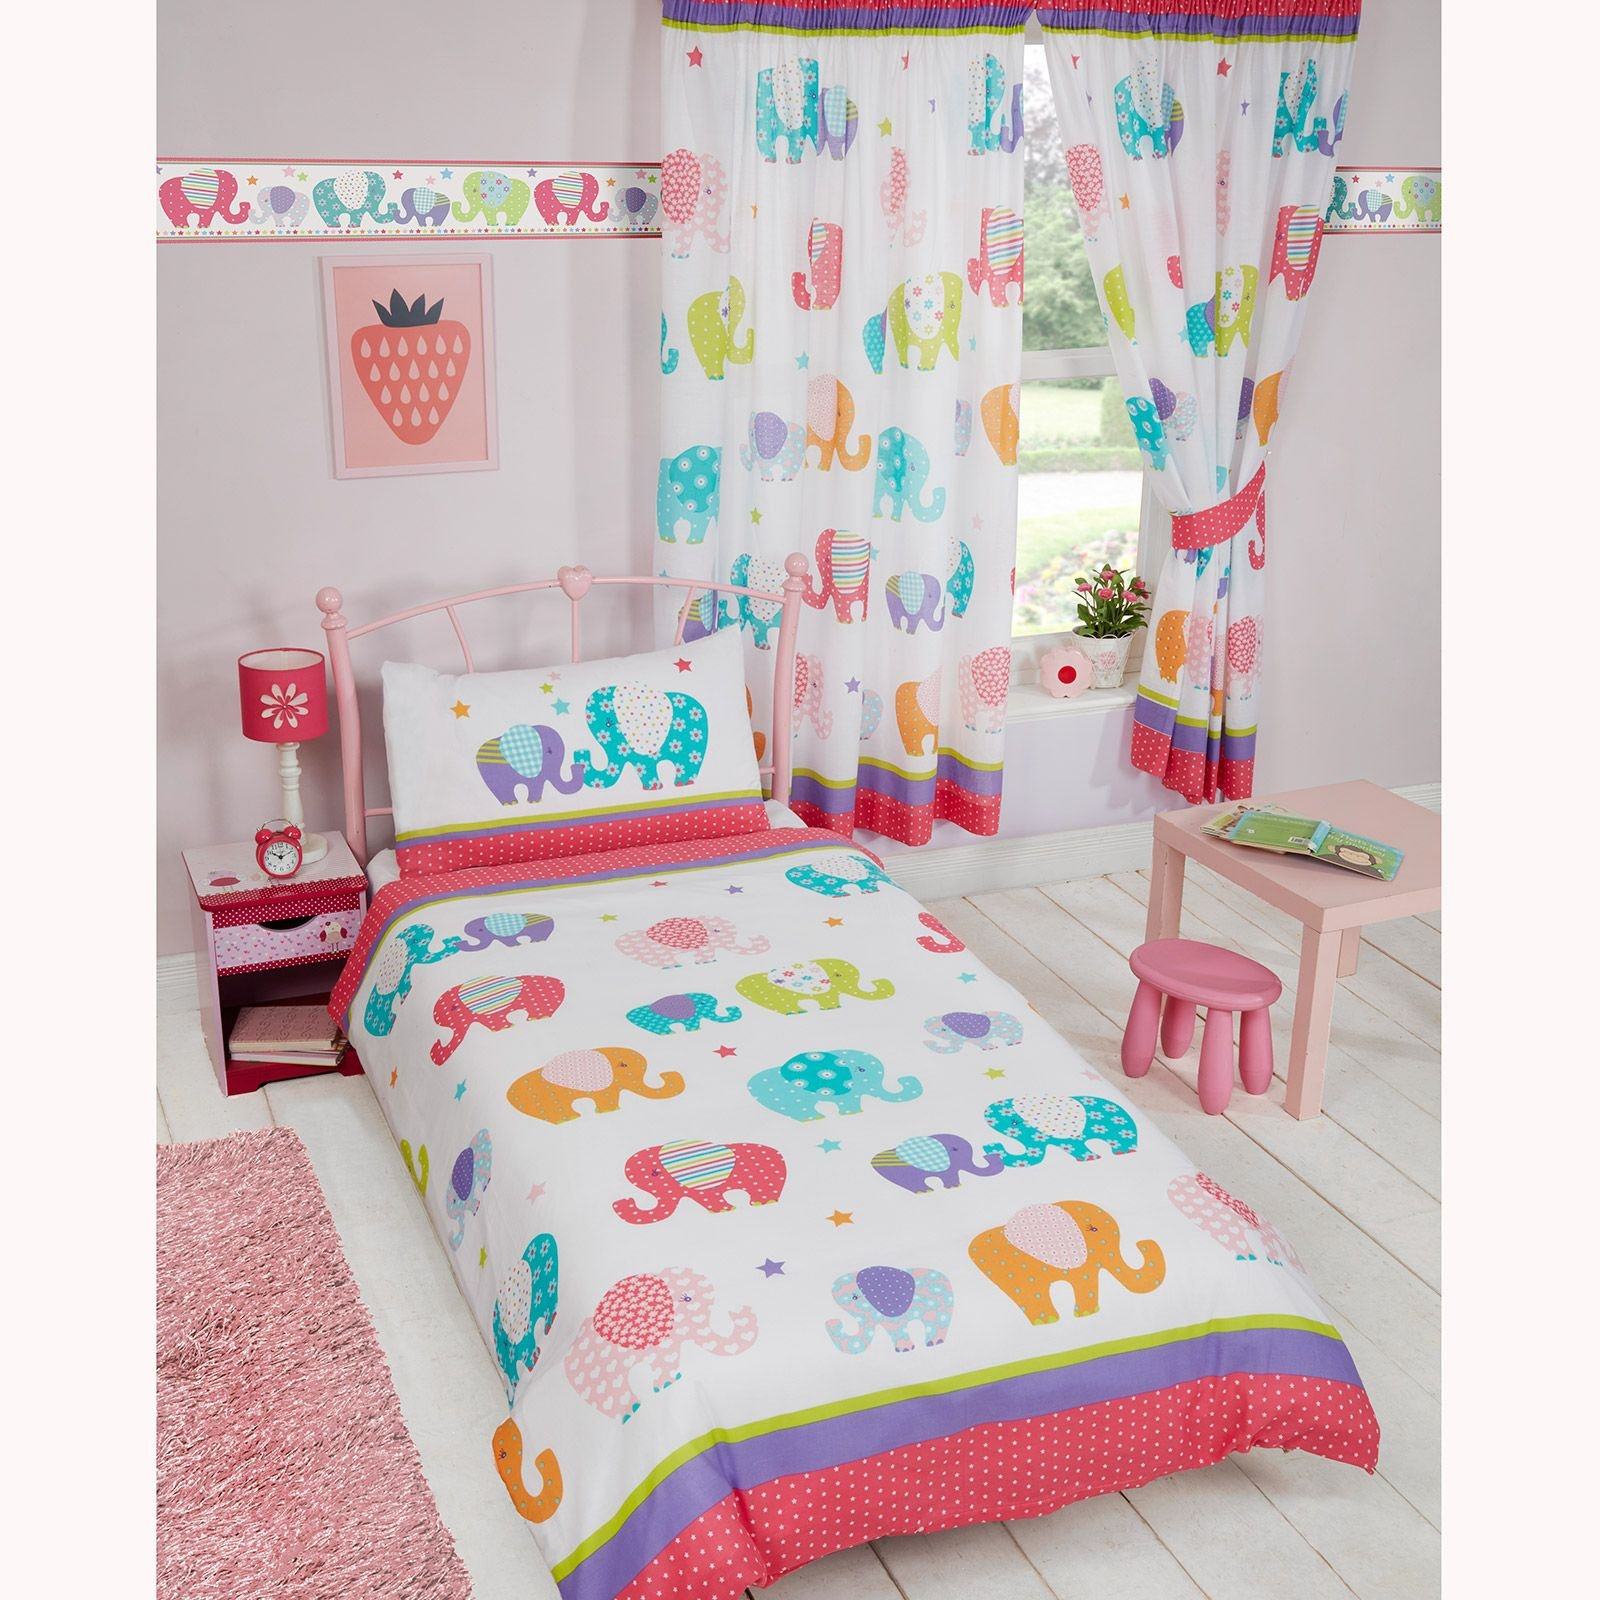 Patchwork Elephant Junior Duvet Cover and Pillowcase Set + Waterproof Toddler Bed Mattress Protector